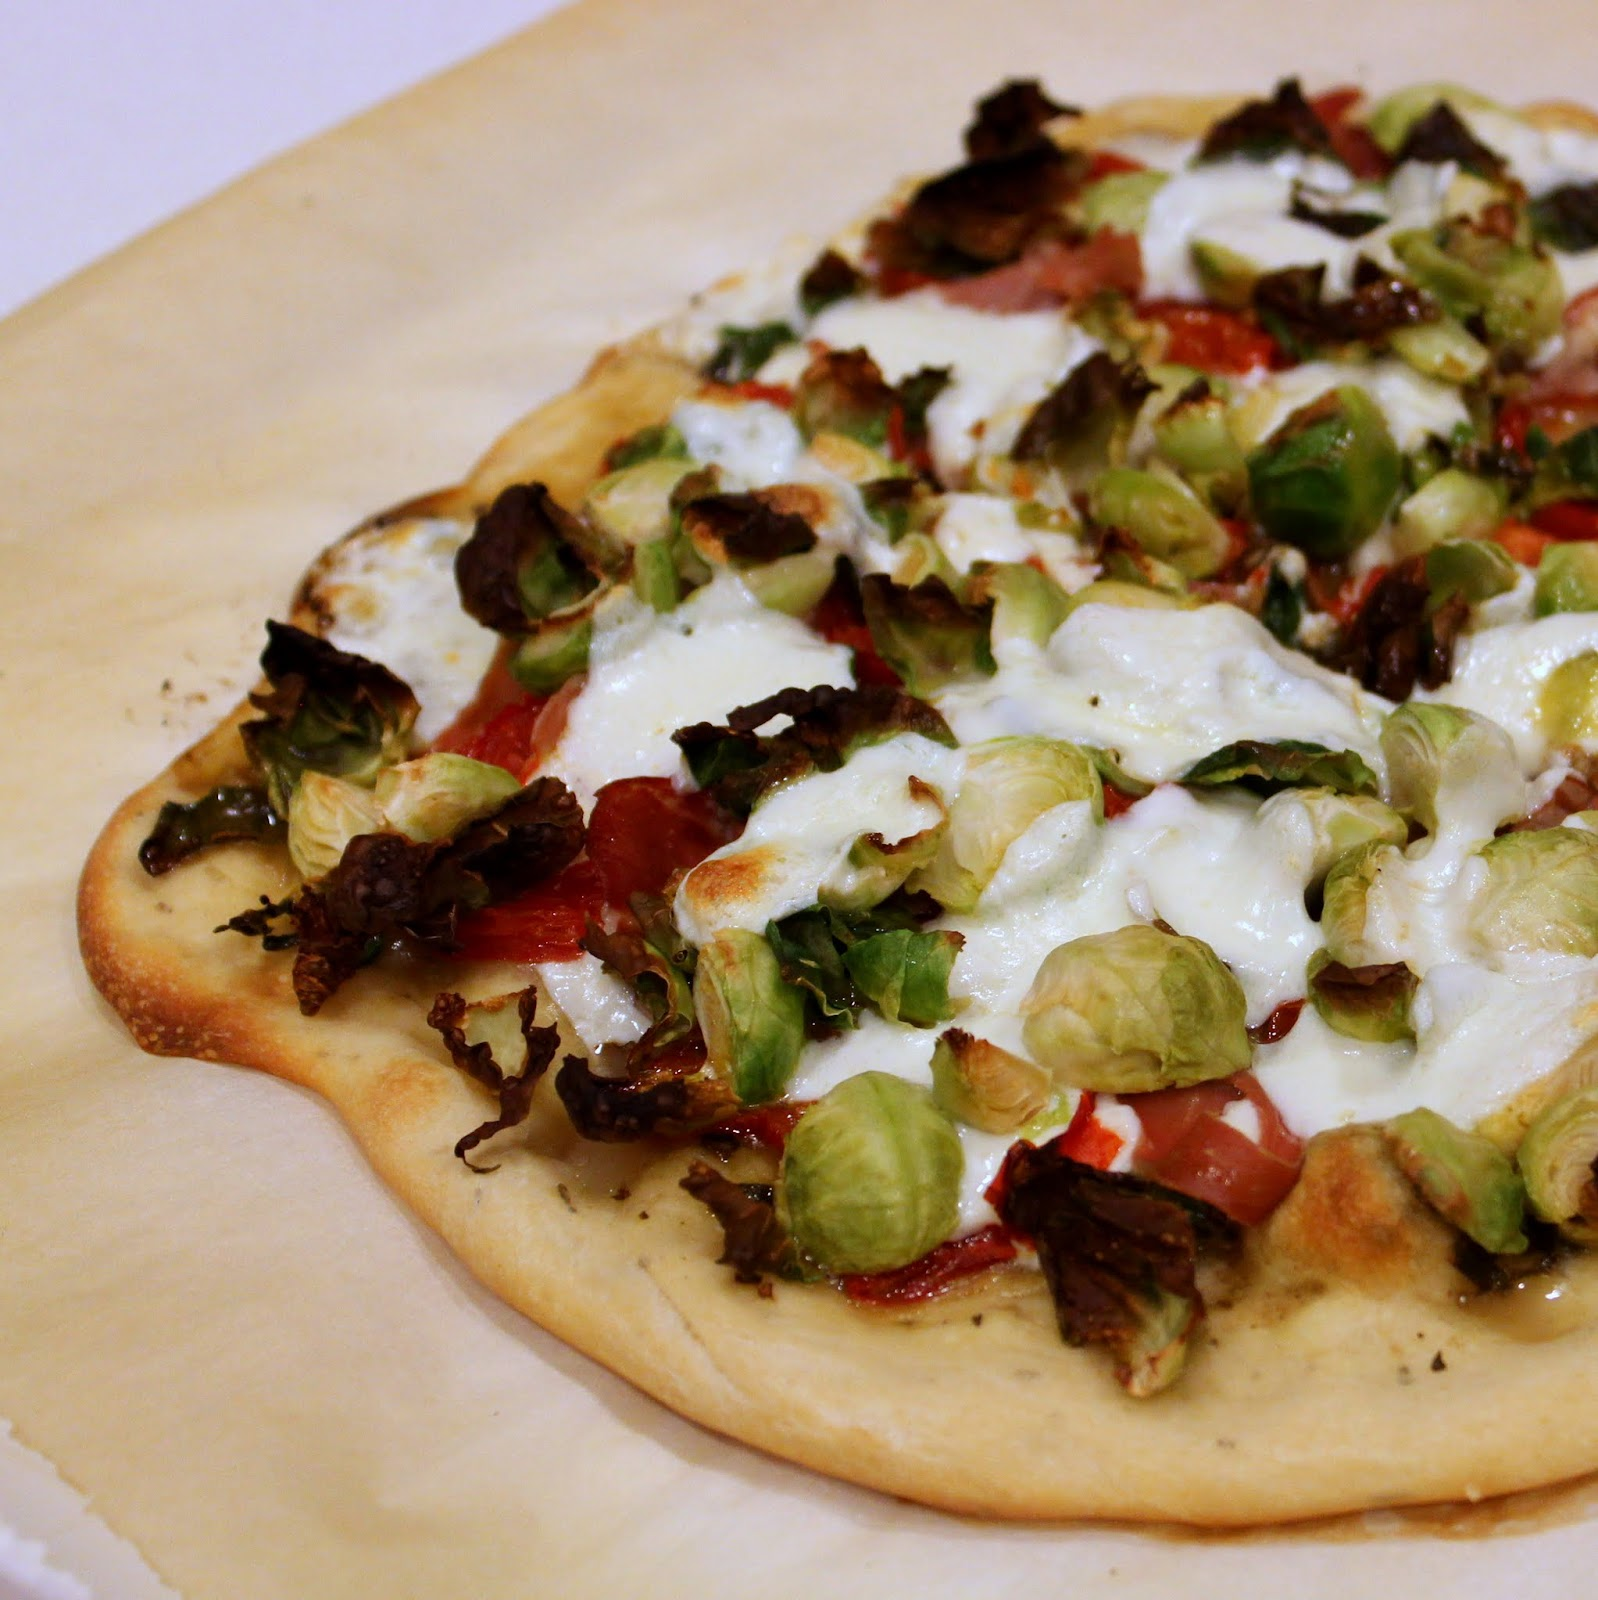 Flatbread pizza with brussel sprouts, prosciutto, and mozzarella